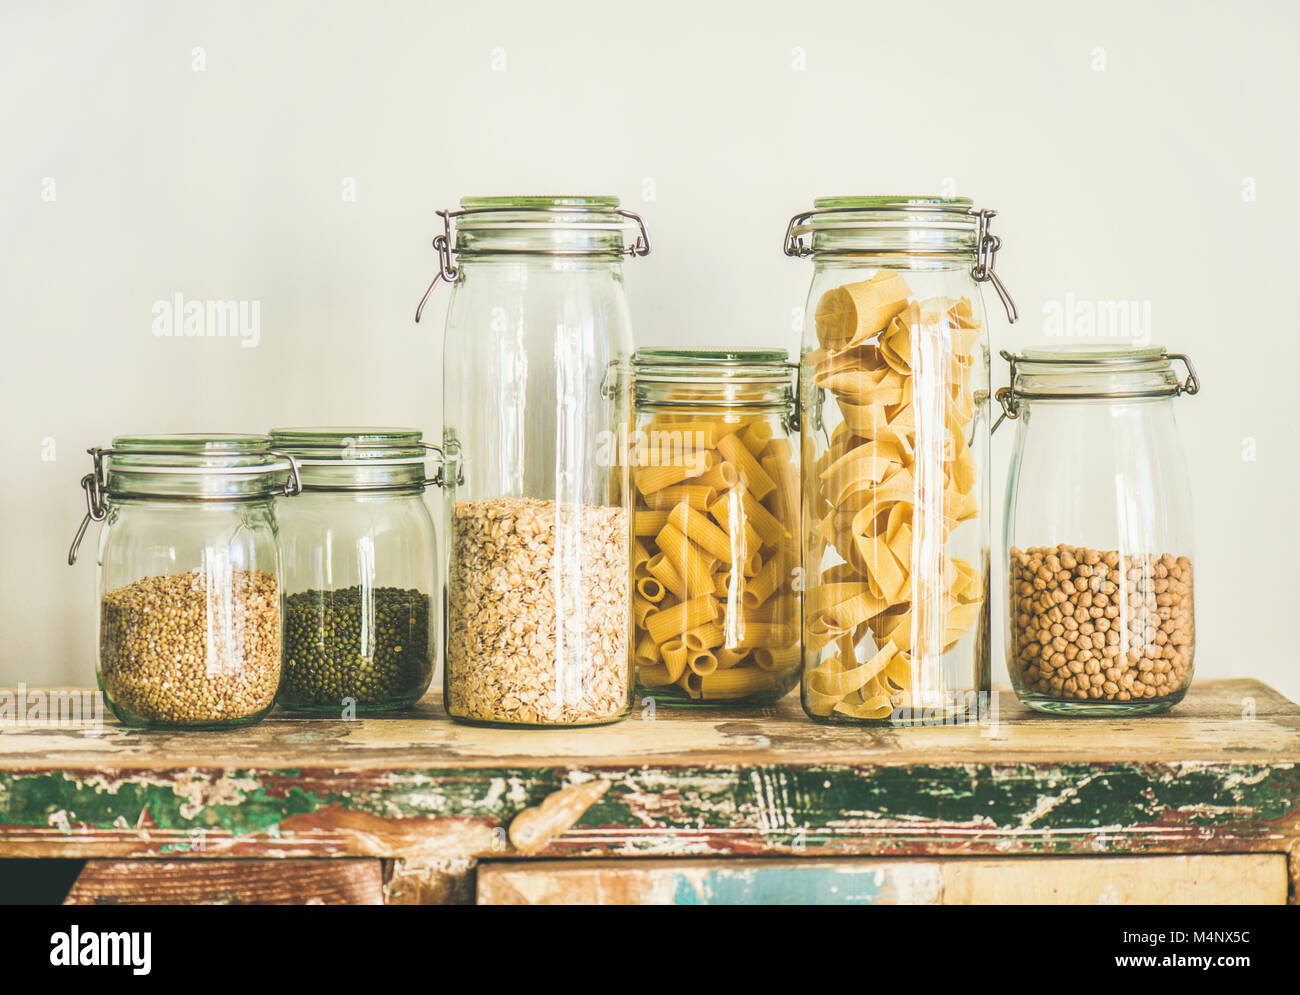 Various uncooked cereals, grains, beans and pasta for healthy cooking in glass jars on rustic table, white background, - Stock Image